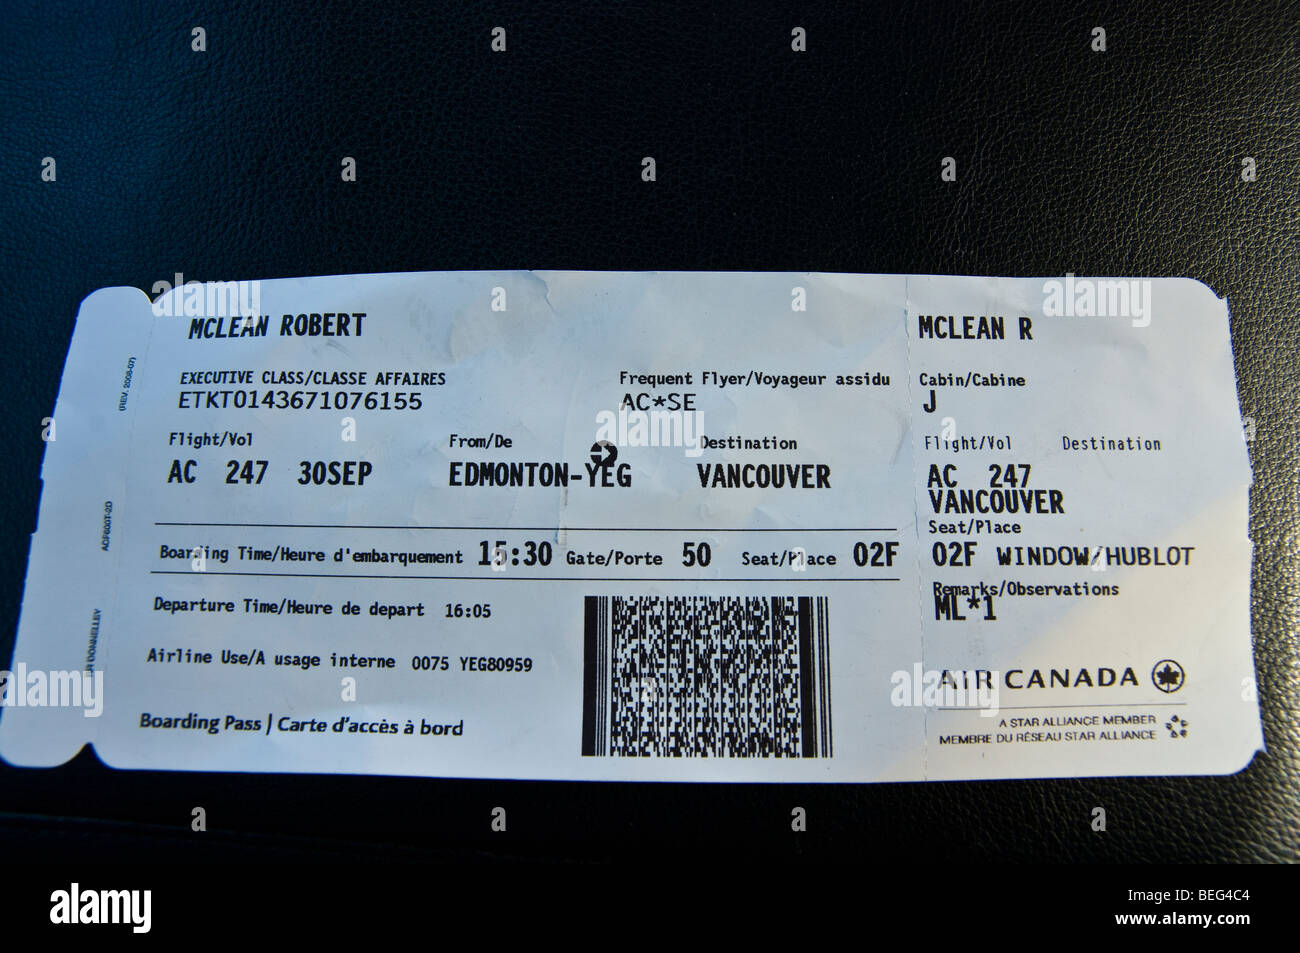 Air Canada Airline Tickets Wiring Diagrams Dynamix Mini 12 Port Patch Panel Cat 6 T568a T568b Plane Ticket Stock Photo 26170260 Alamy Rh Com Sale Philippine Airlines